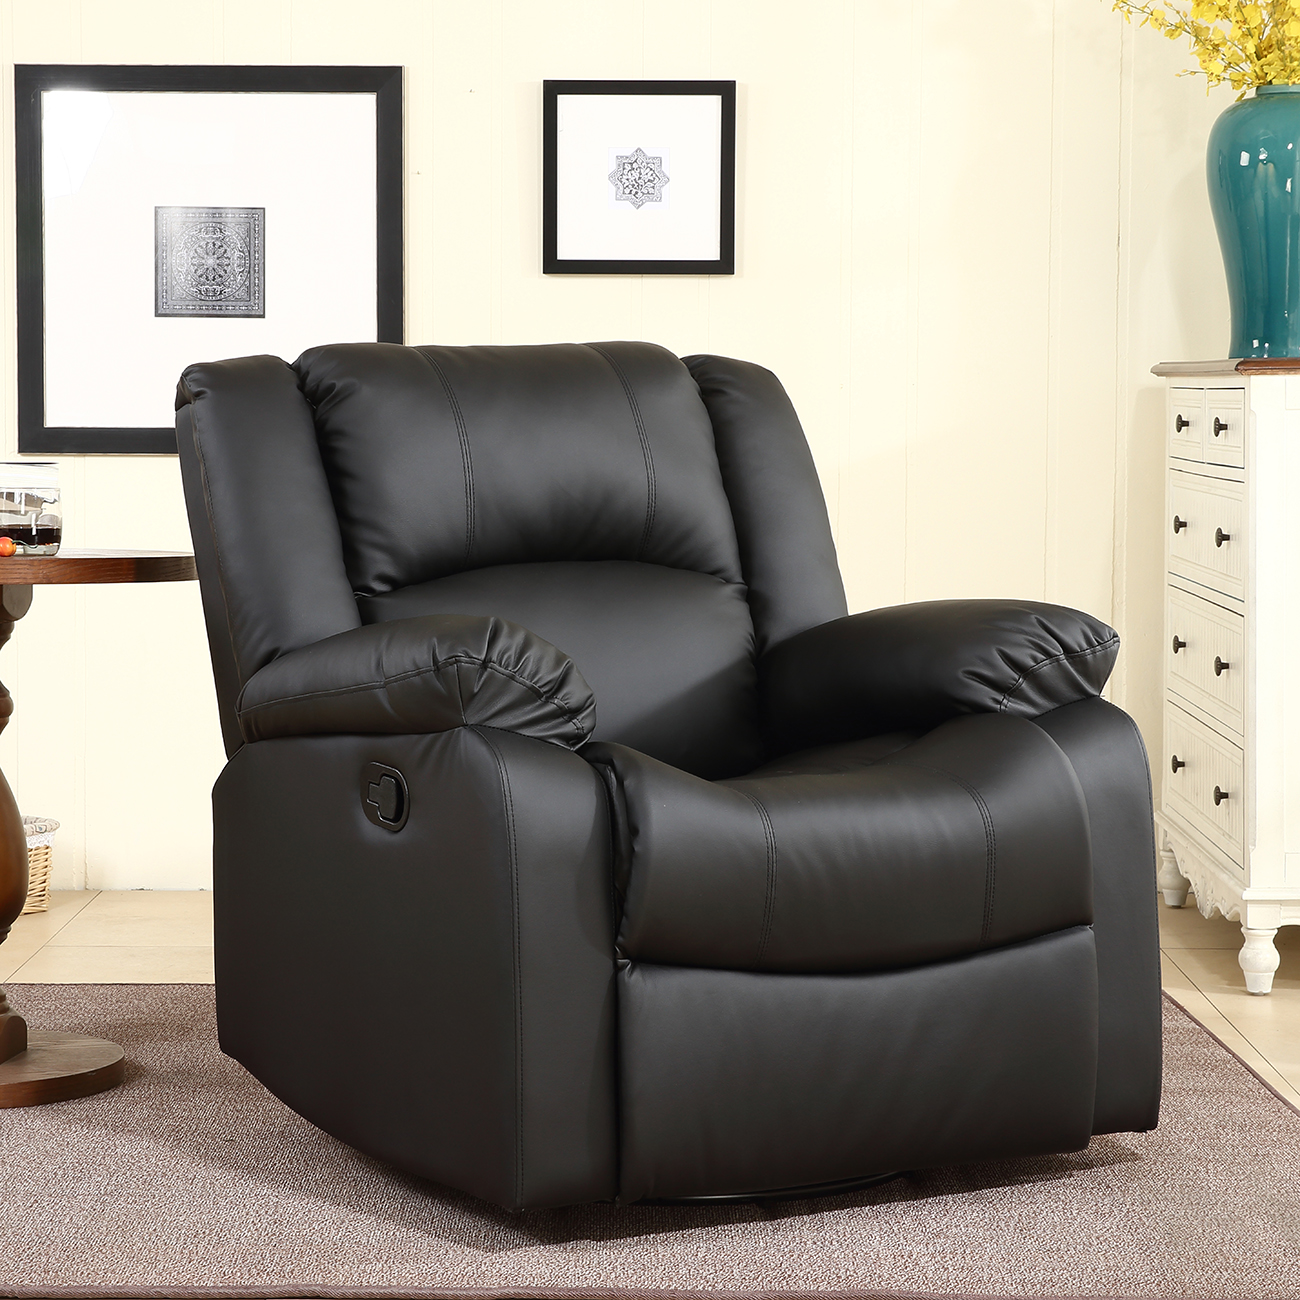 Details About Leather Black Brown Single Seat Living Room Recliner And Rocking Swivel Chair